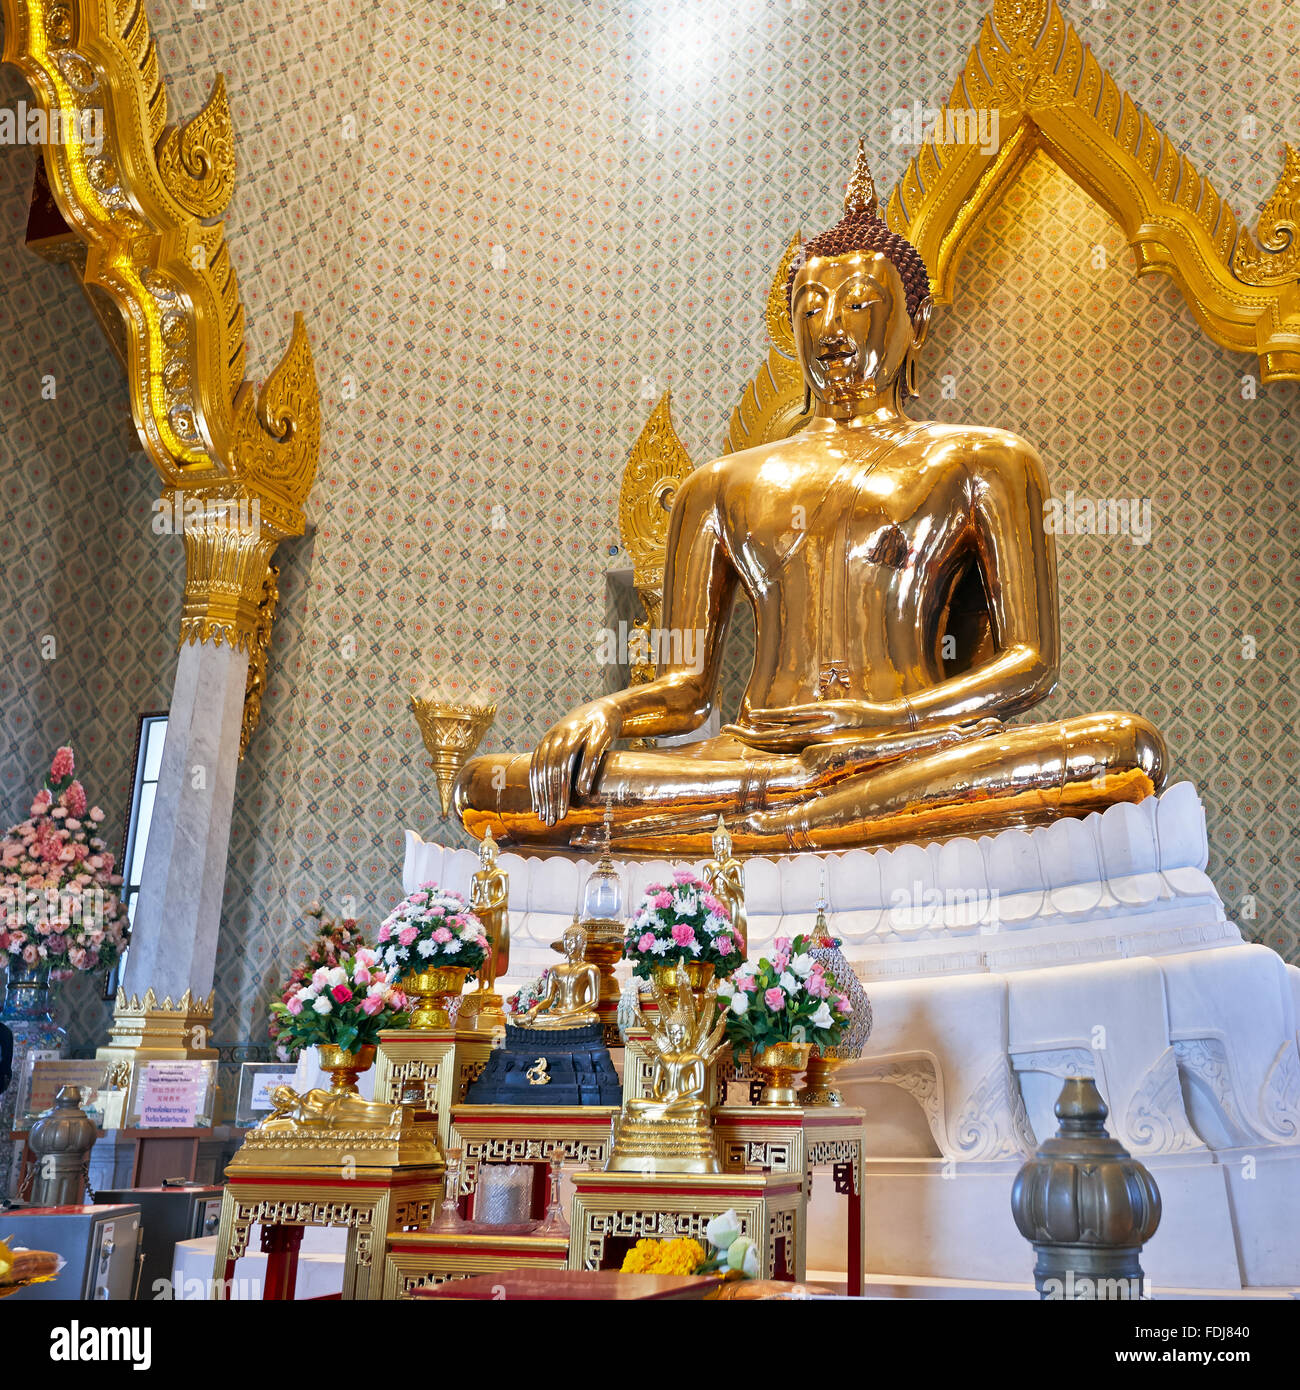 Solid gold Buddha image in Wat Traimit Temple. Bangkok, Thailand. Stock Photo